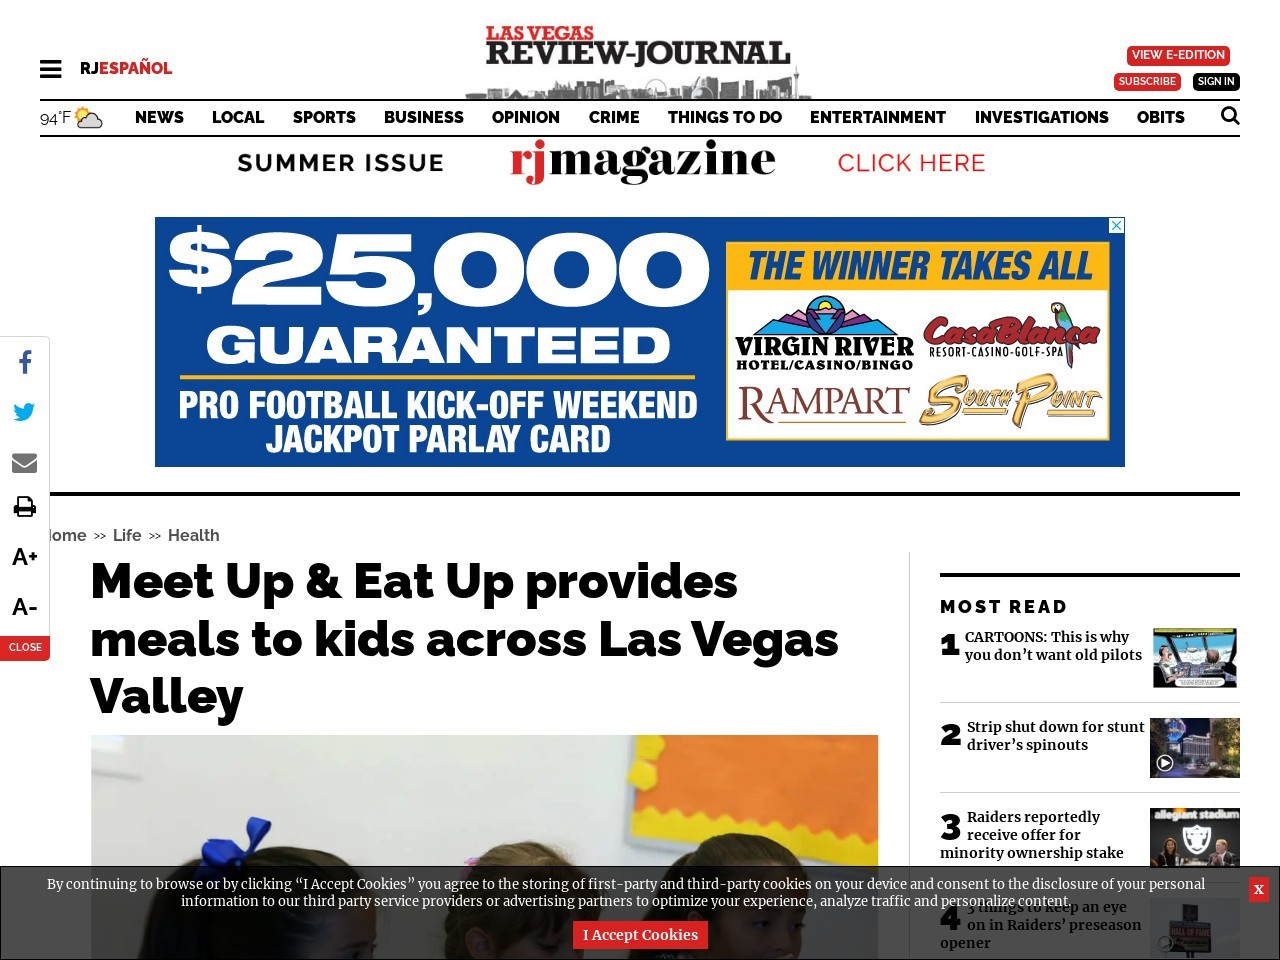 Meet Up & Eat Up provides meals to kids across the Las Vegas Valley